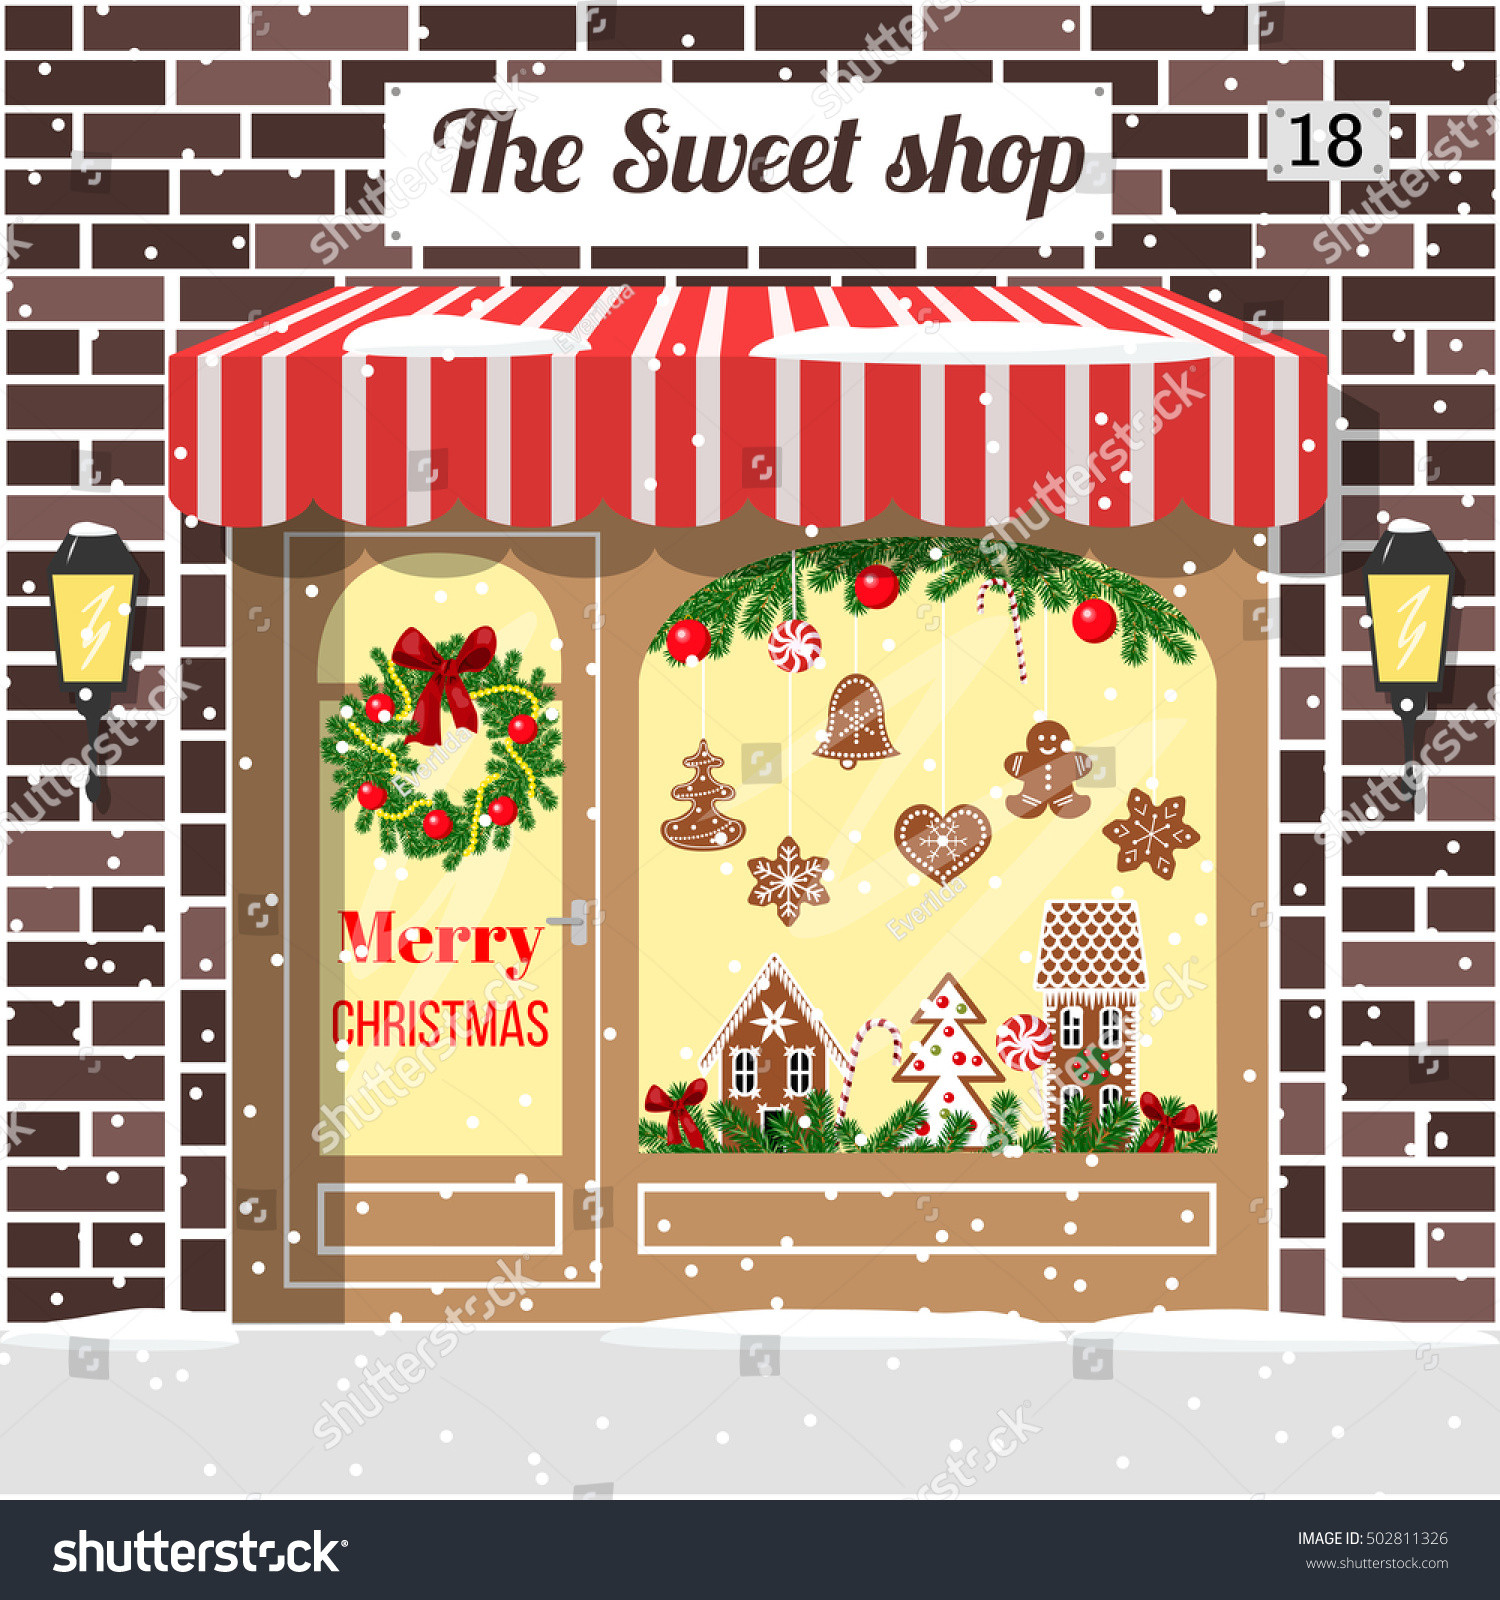 Christmas Candy Store  Christmas Decorated Illuminated Sweet Shop Candy Stock